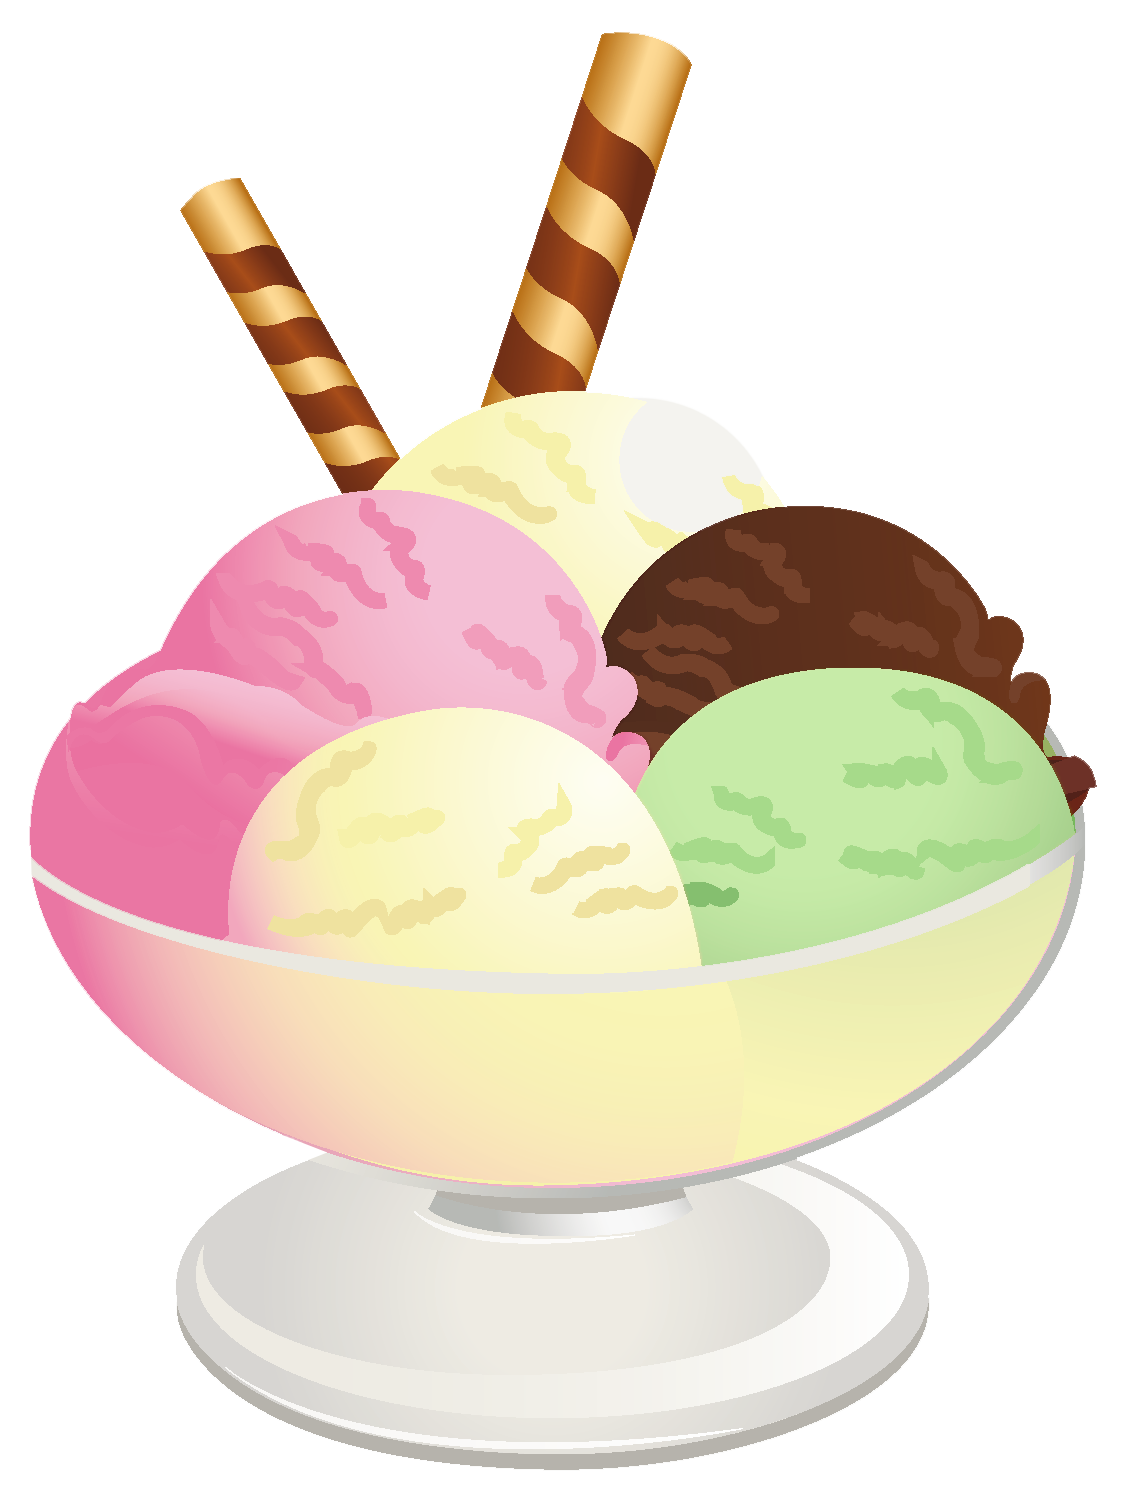 Frame clipart ice cream. Desserts cliparts free download